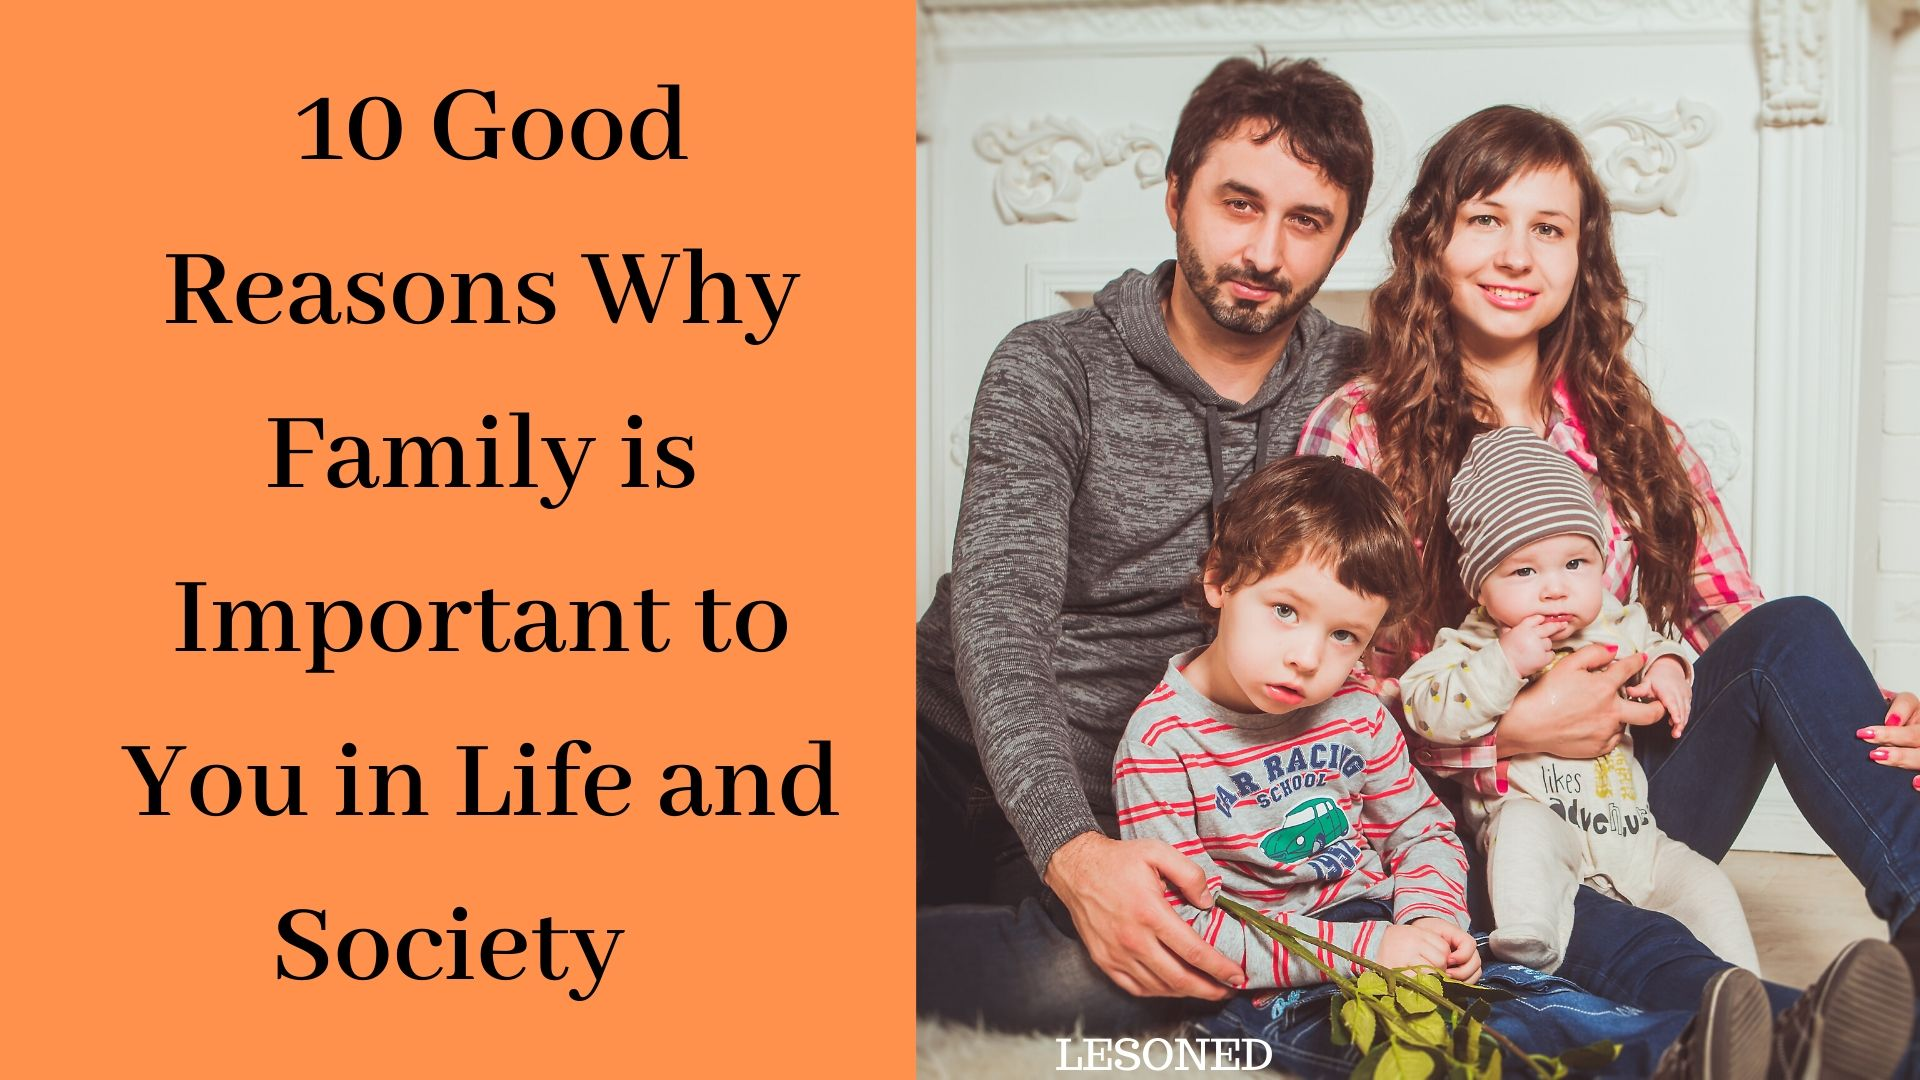 10 Good Reasons Why Family is Important to You in Life and Society